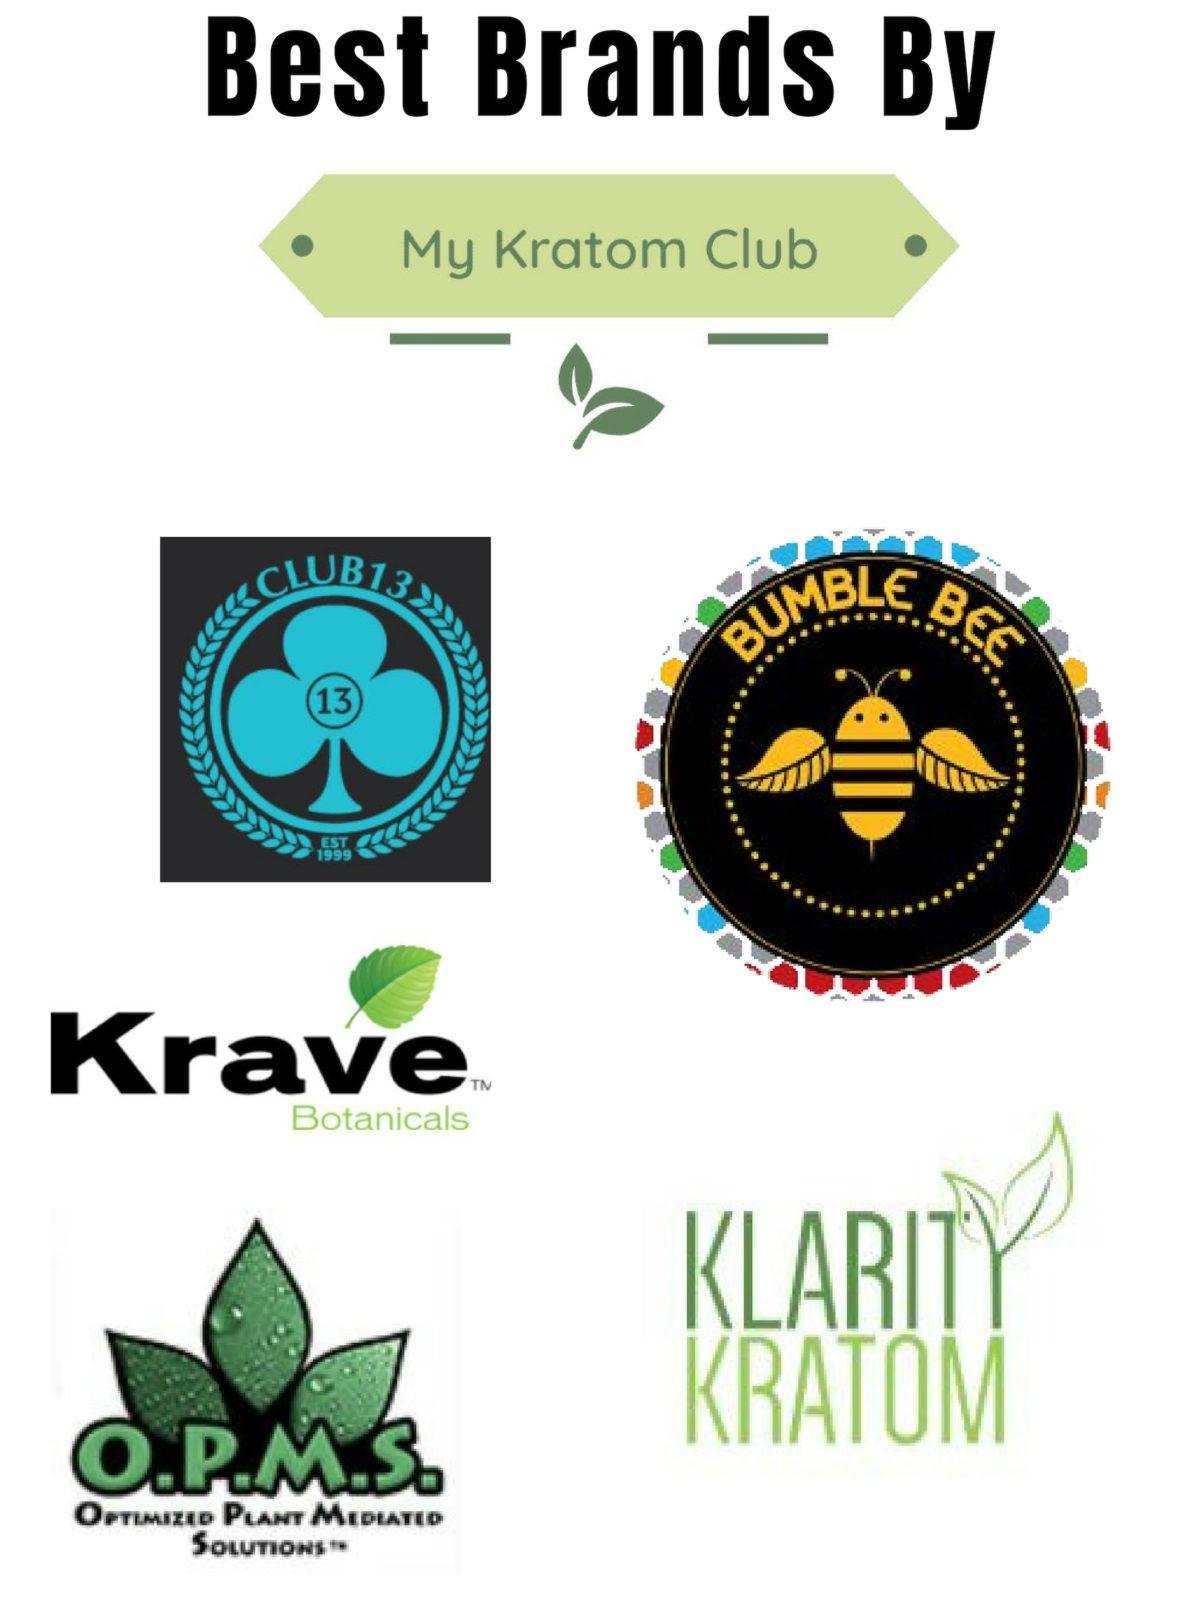 Best Brands By My Kratom Club